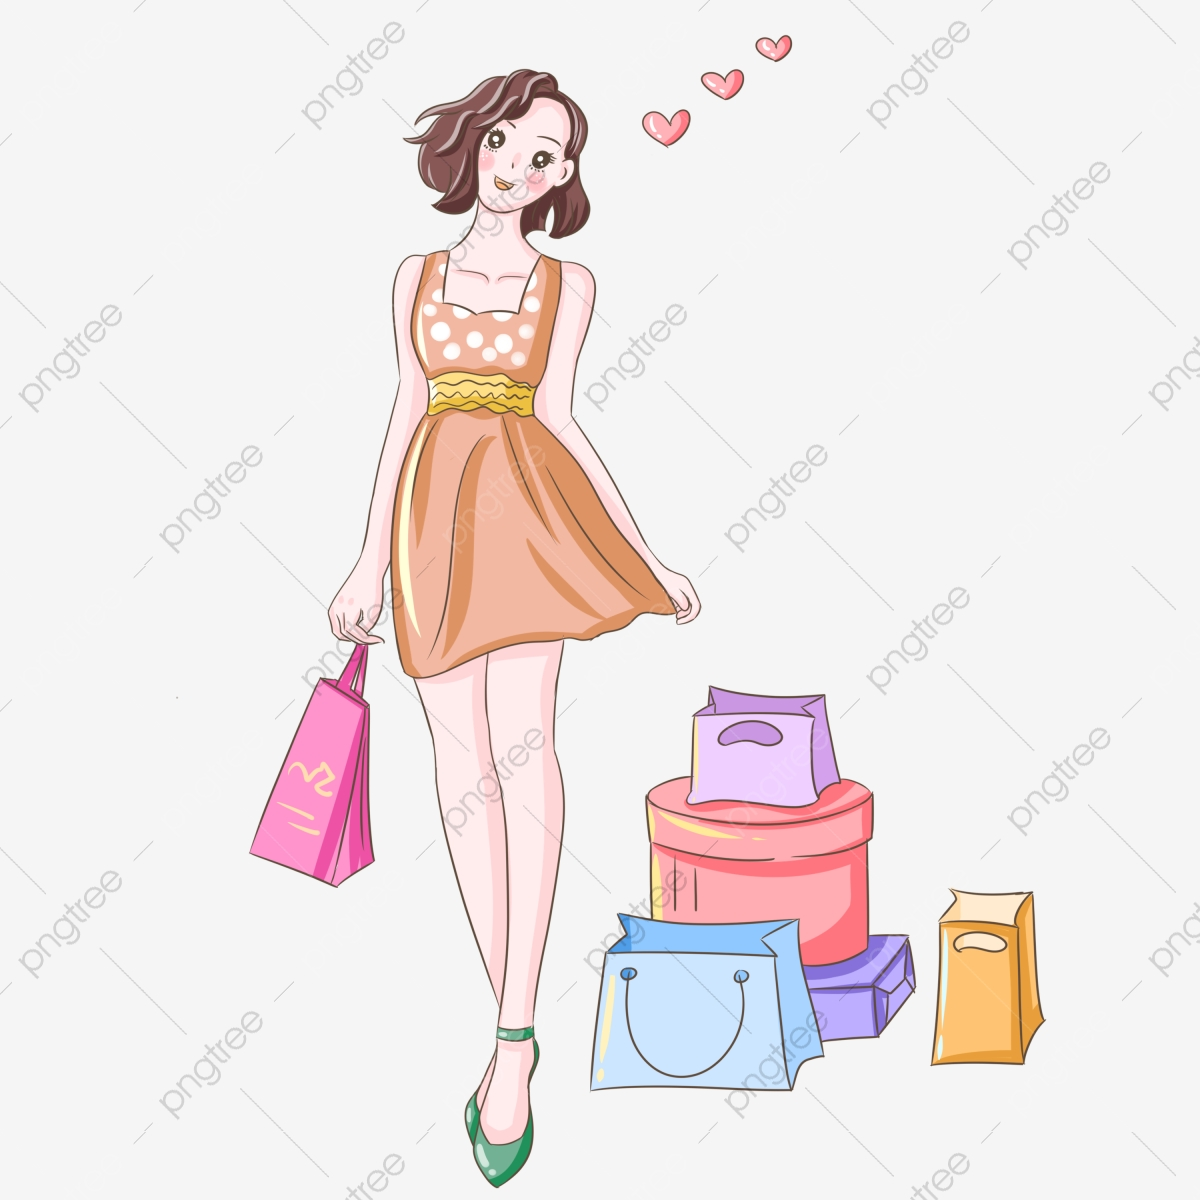 Free Crazy Woman Cliparts, Download Free Clip Art, Free Clip Art on Clipart  Library